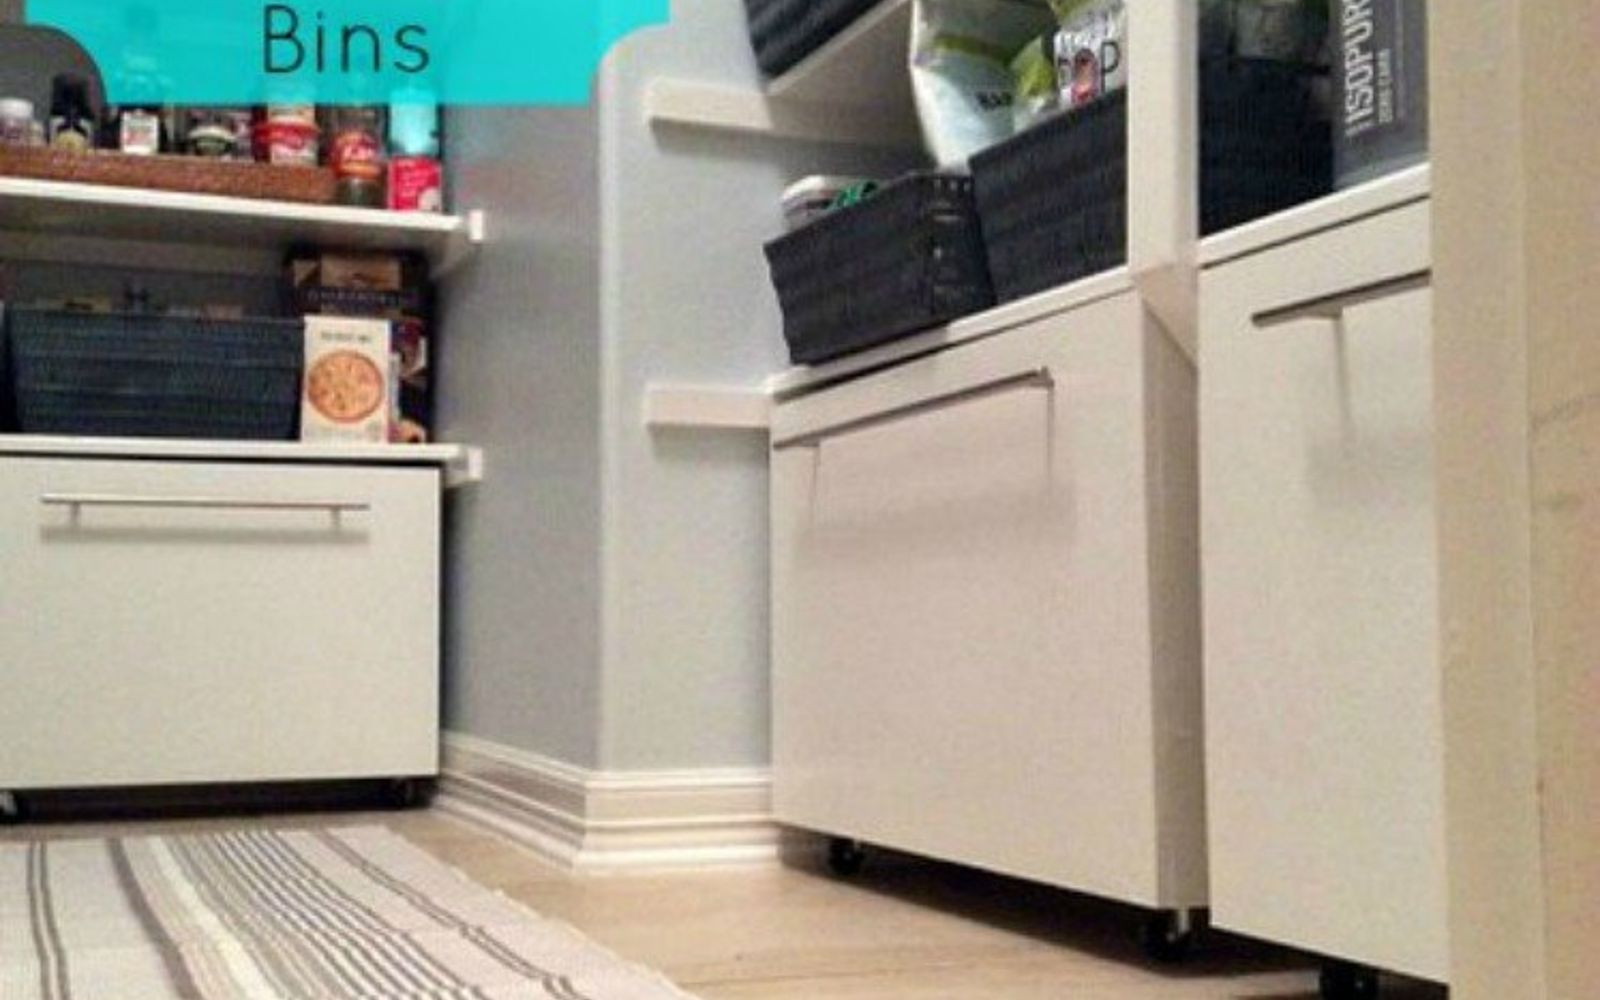 s add more pantry space with these brilliant hacks, closet, Add some storage bins for under your shelves